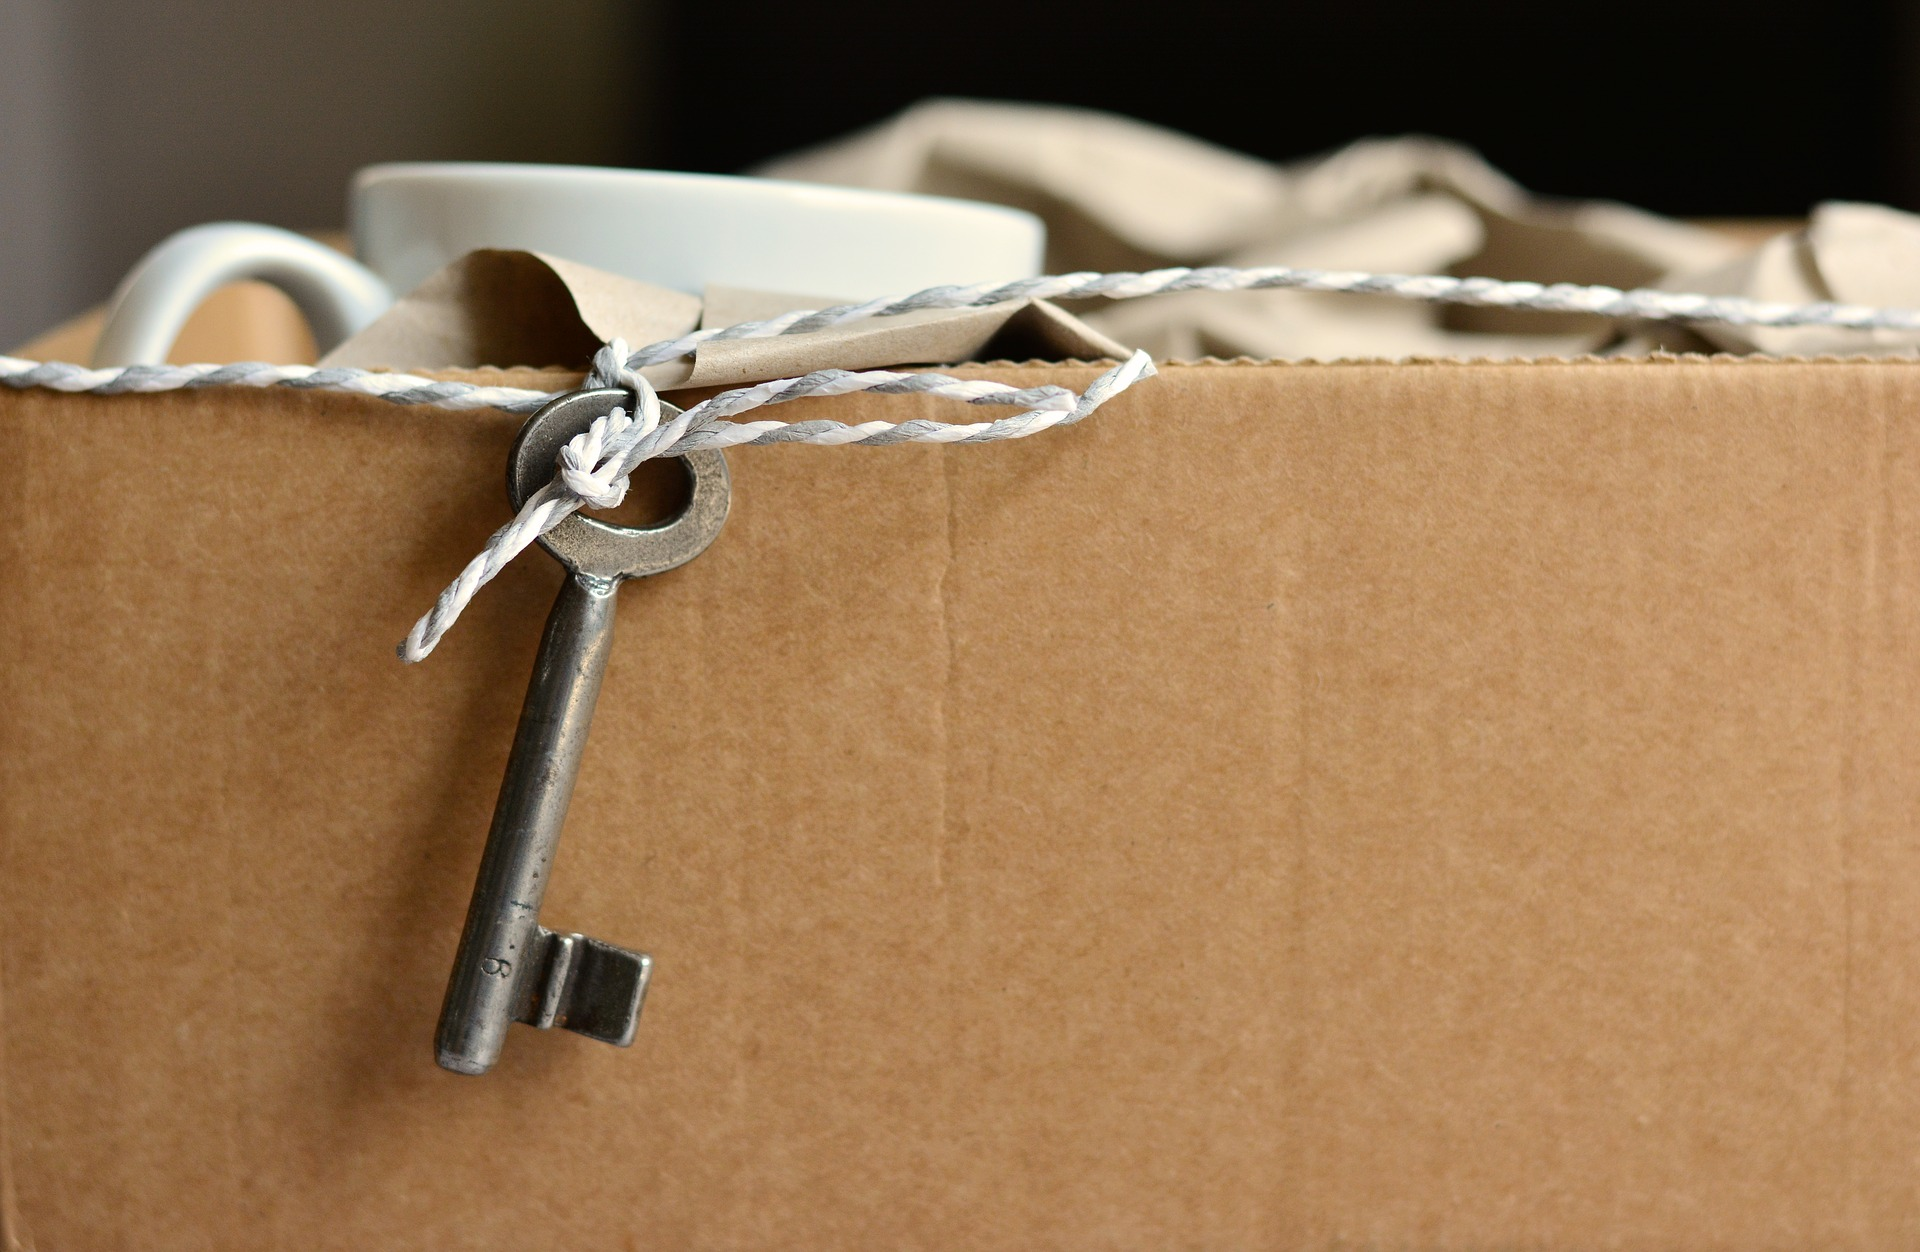 relocation services : the best way for your installation.